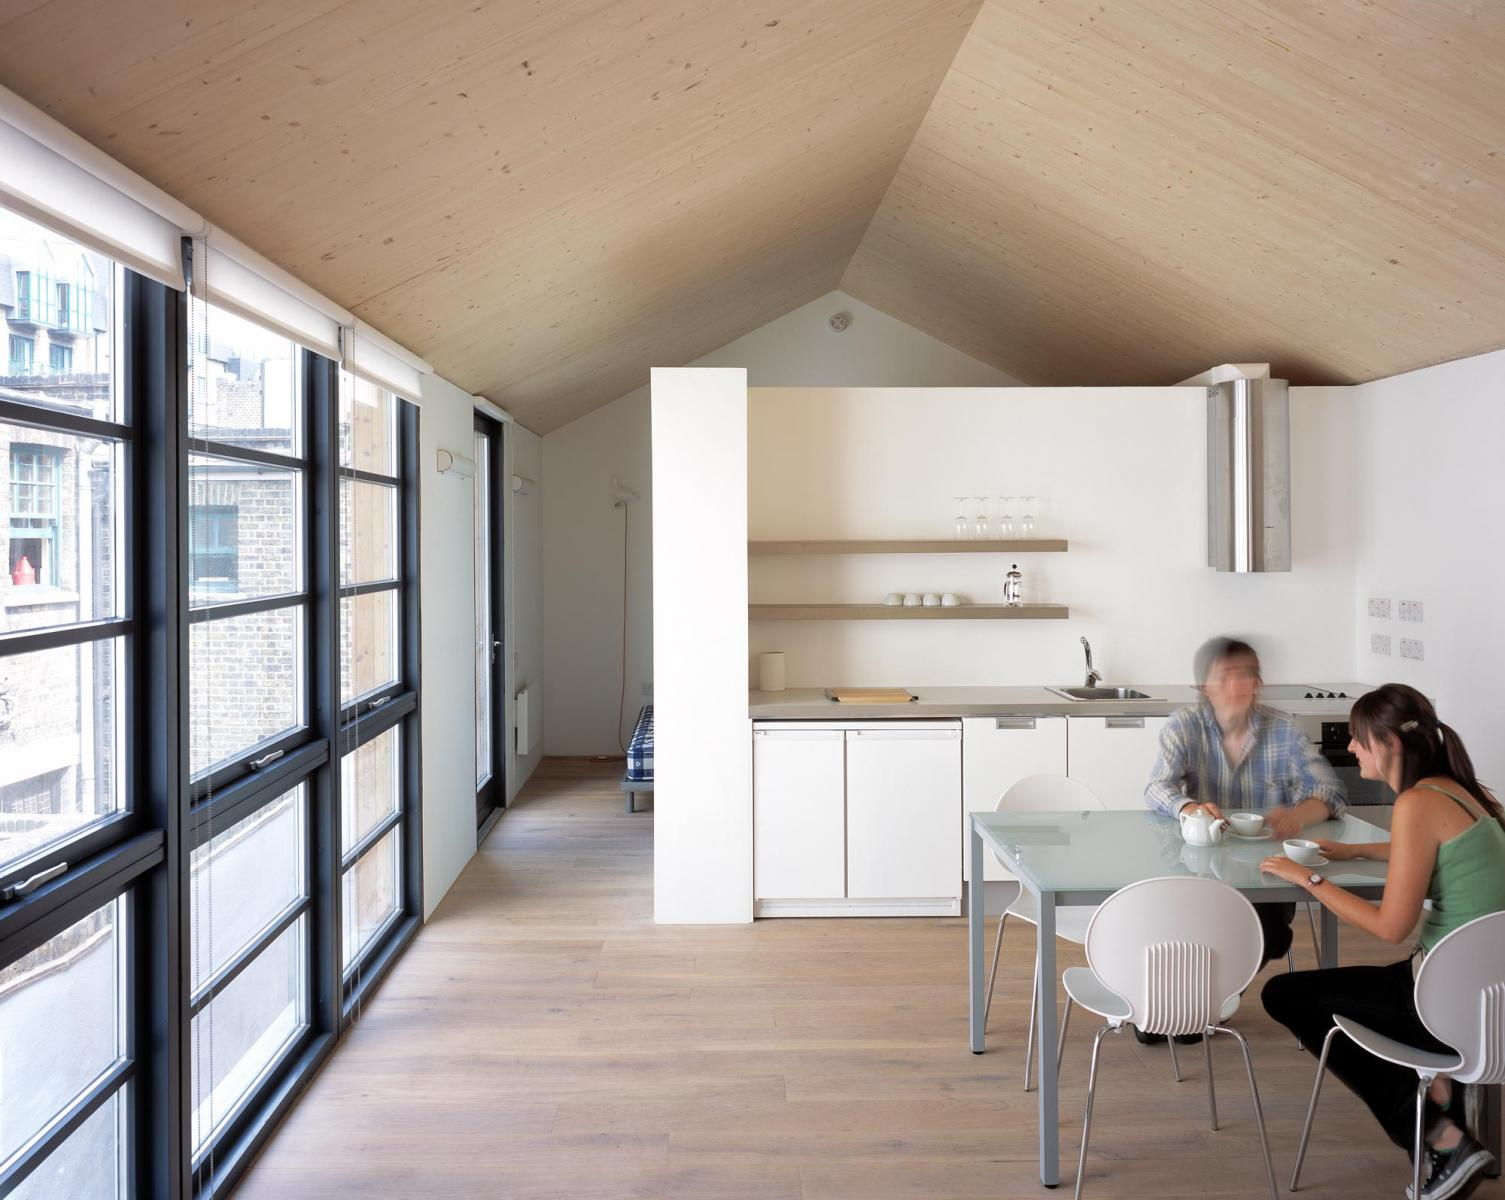 Carlisle Lane Flats, London - View of the Kitchen at exposed timber roof